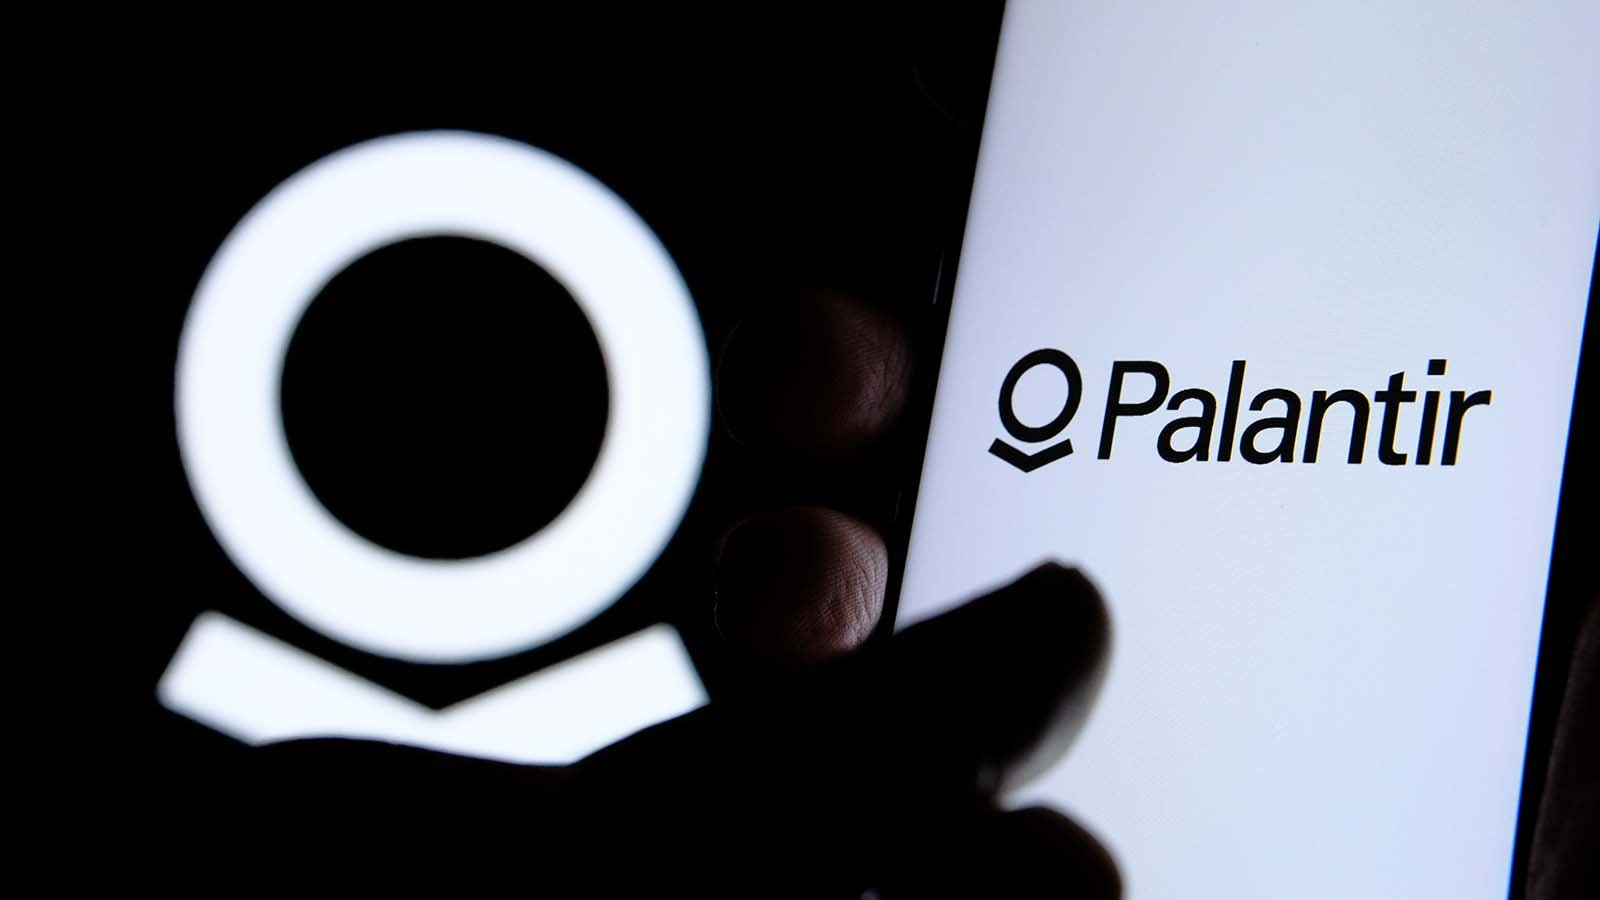 Heres How Palantir Stock Can Rally 20% From Current Levels